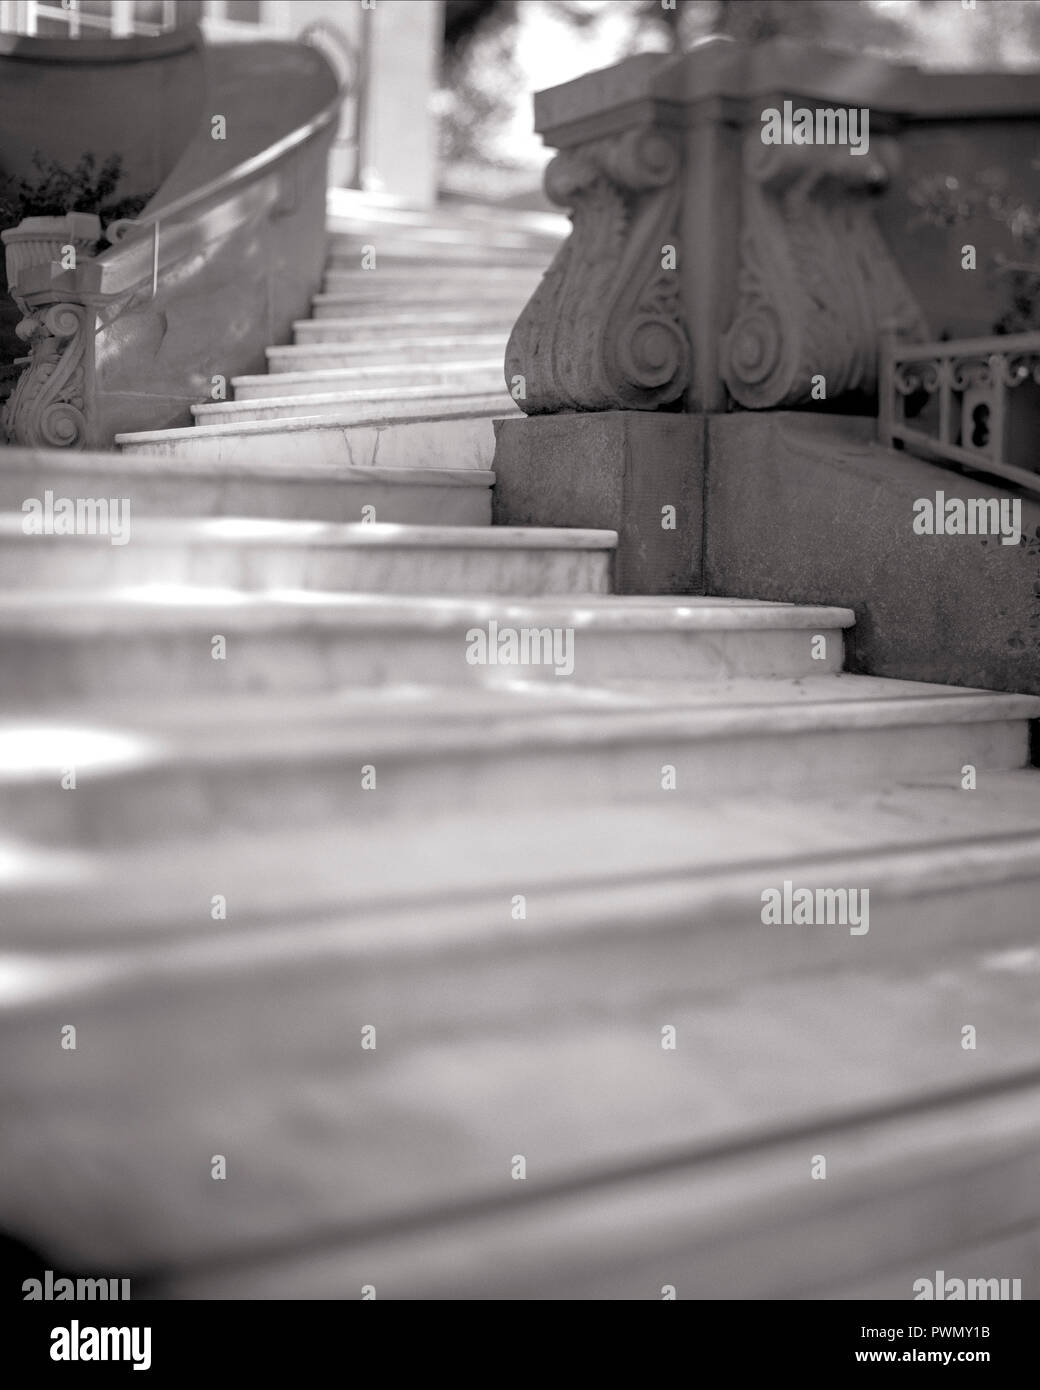 High angle view of steps on a winding staircase. Stock Photo